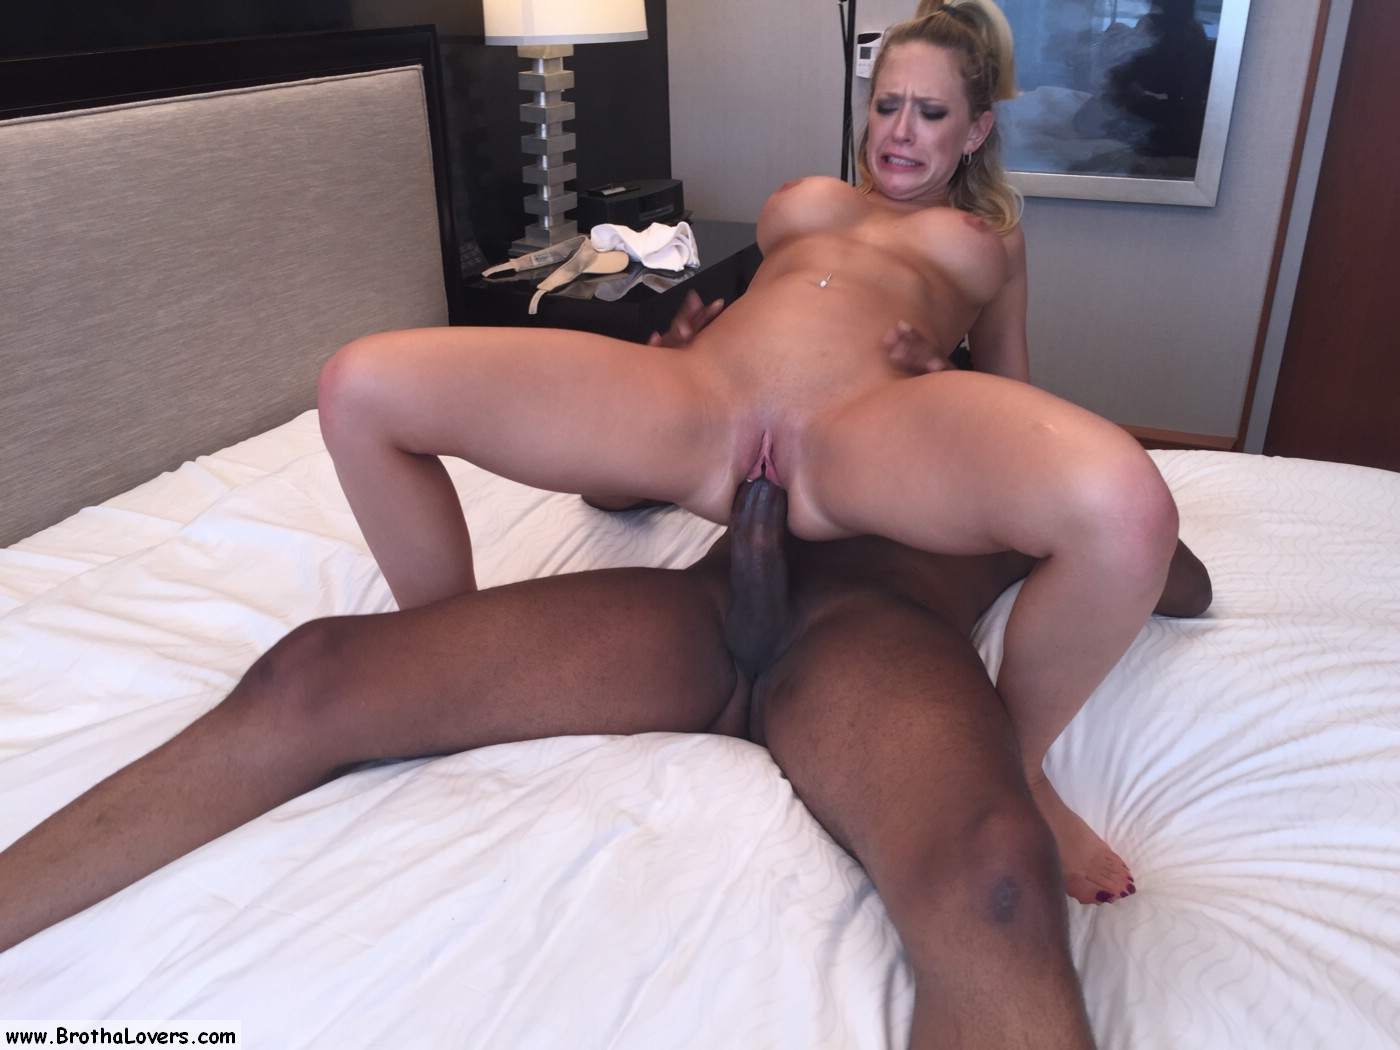 Cuckold milf meets bbc bull first time sissy husband watches - 1 part 7